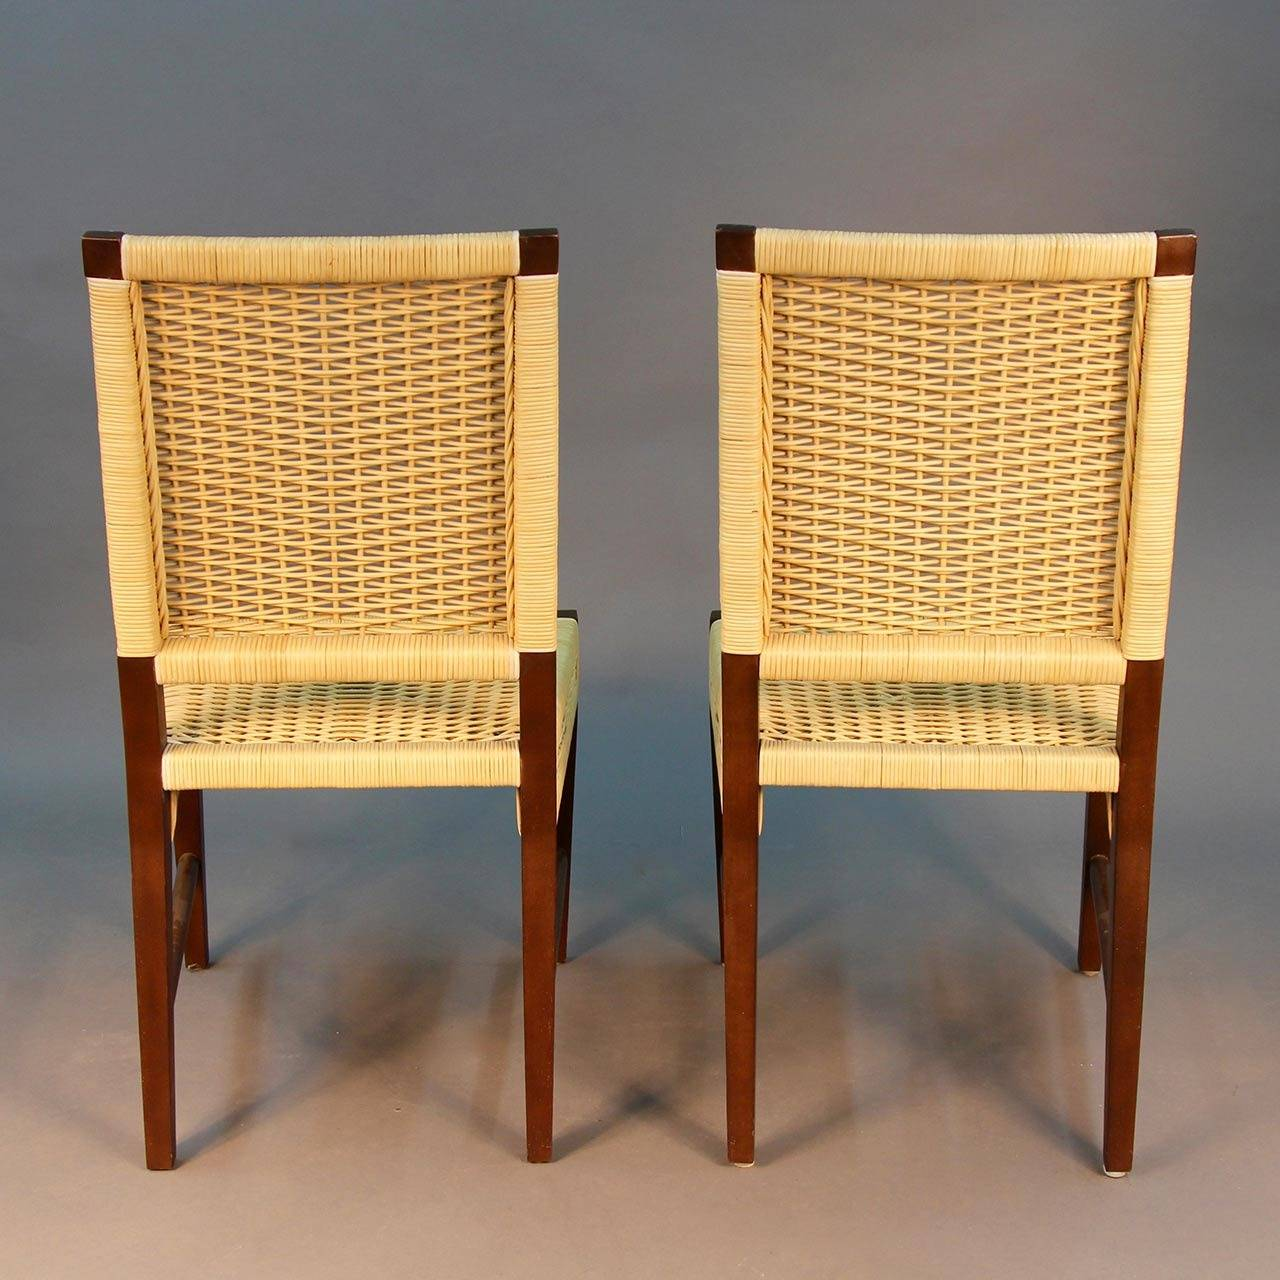 Set of Four Donghia Dining Chairs in Merbau Wood with Raffia Weaving In Excellent Condition For & Set of Four Donghia Dining Chairs in Merbau Wood with Raffia Weaving ...